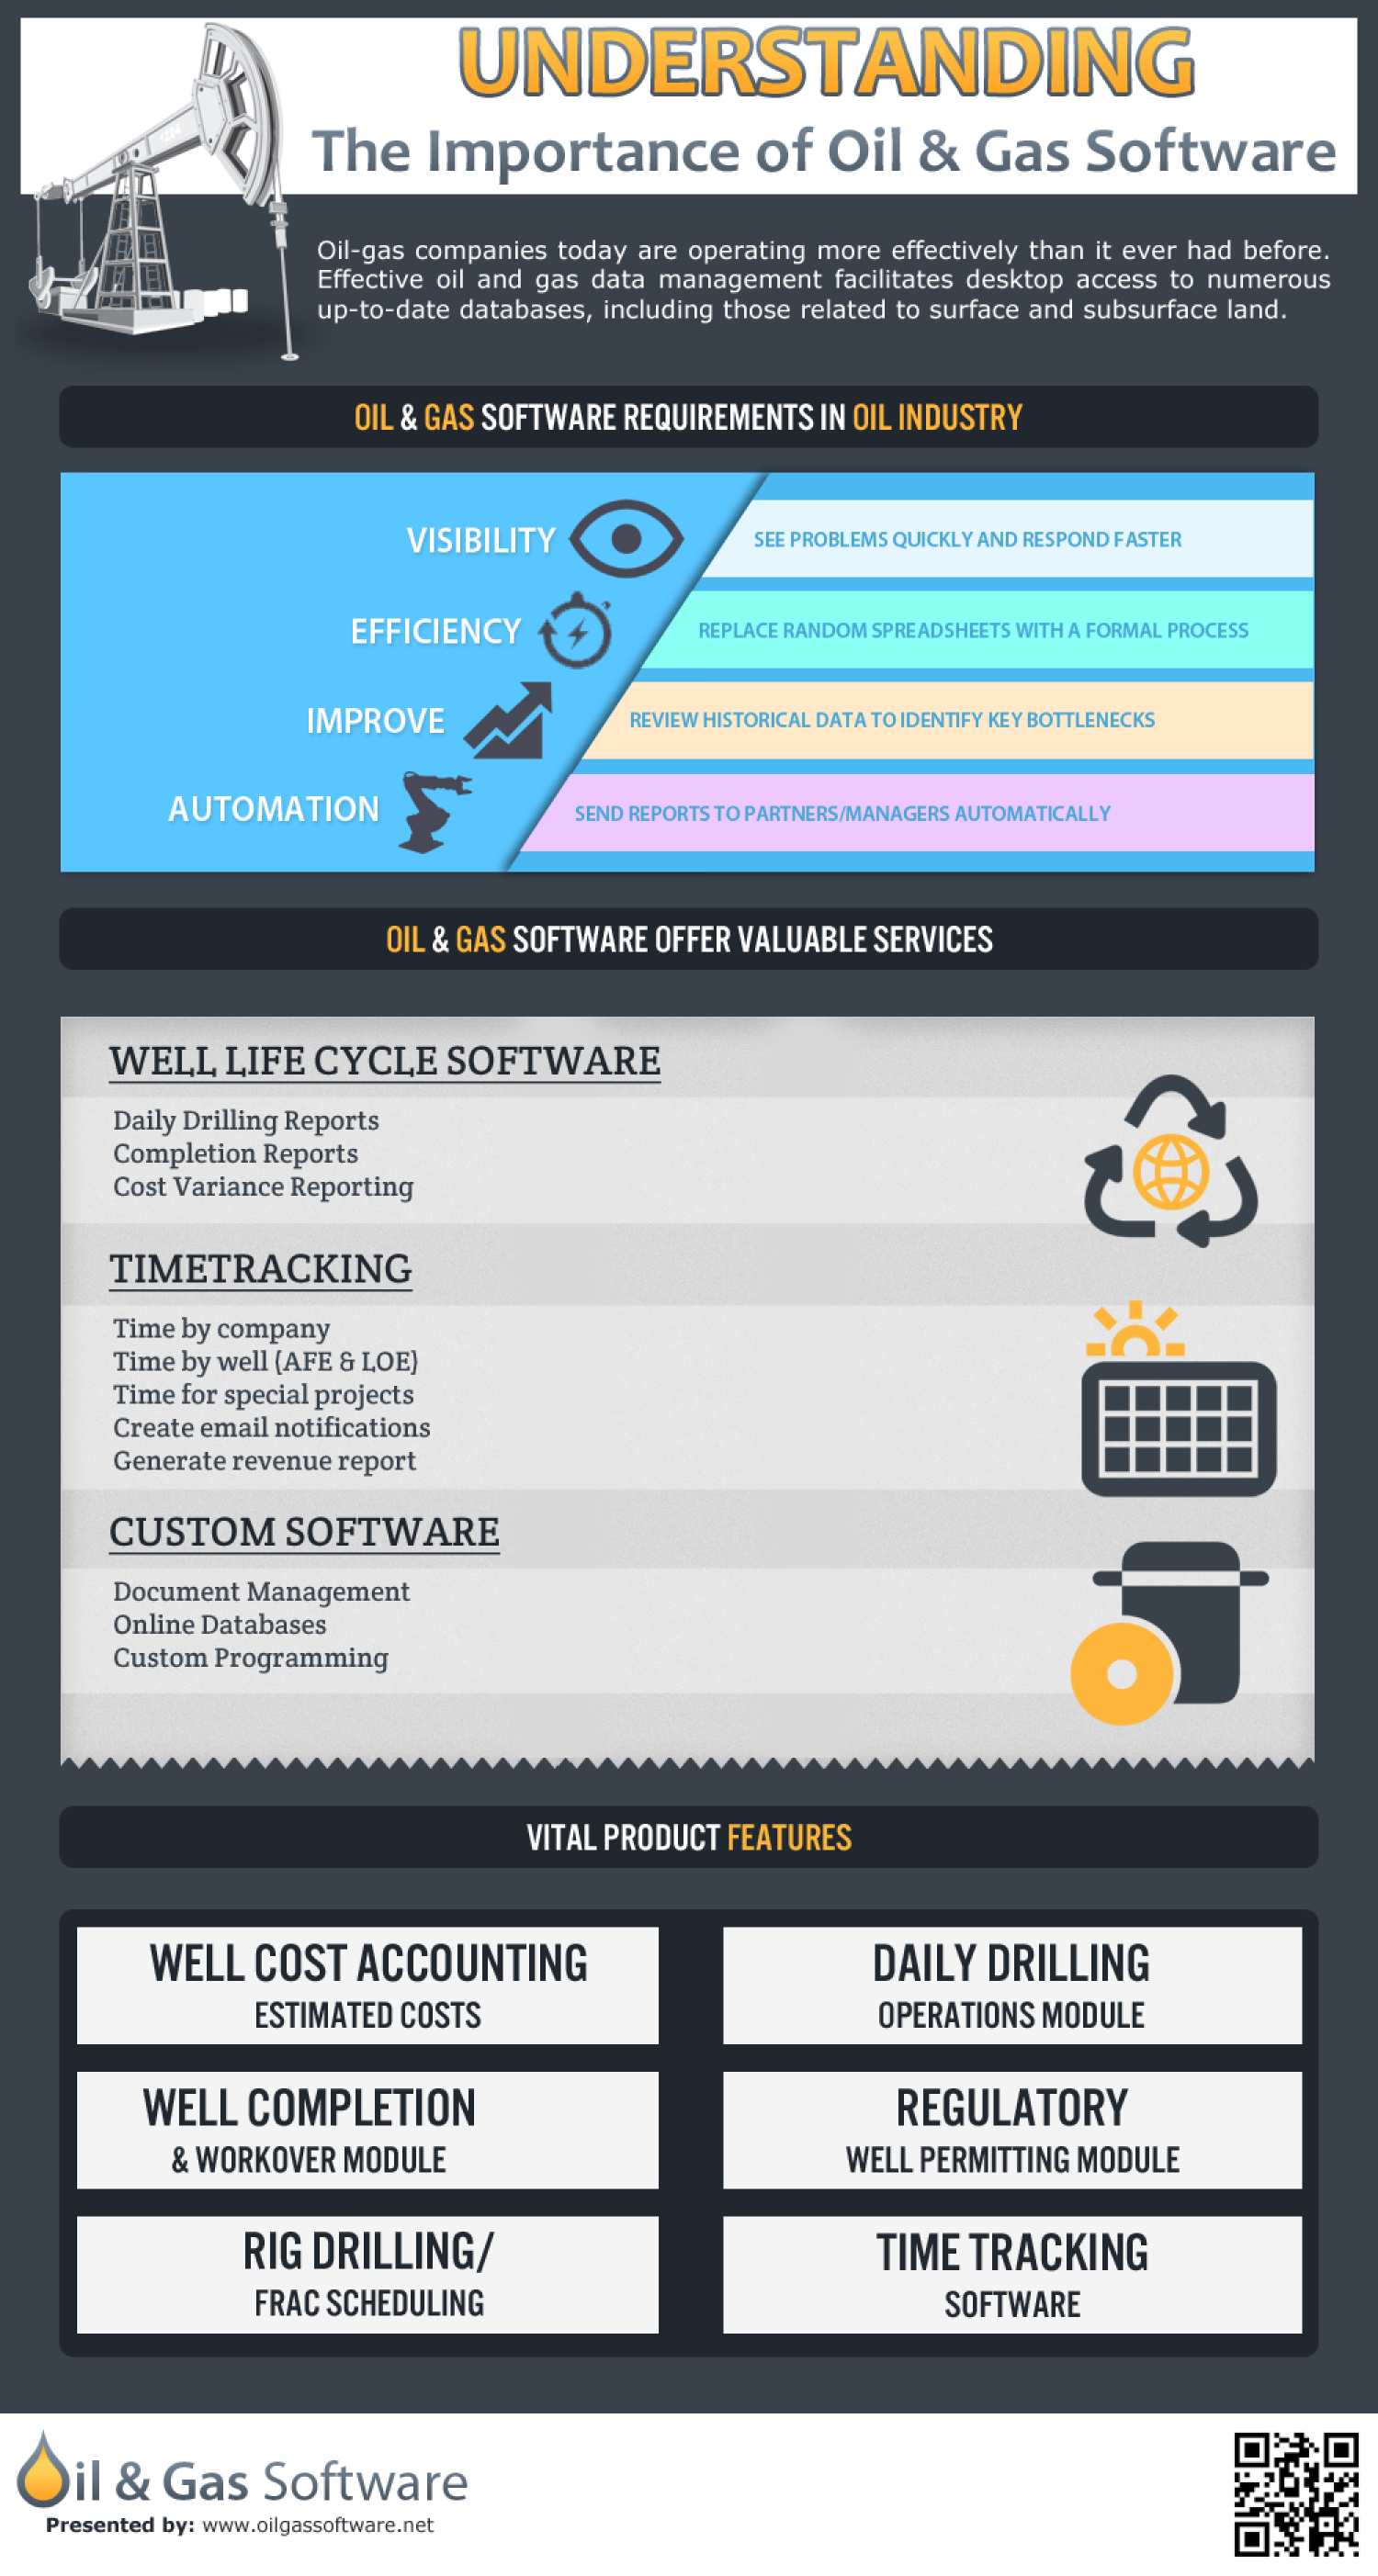 Understanding the importance of Oil & Gas Software Infographic